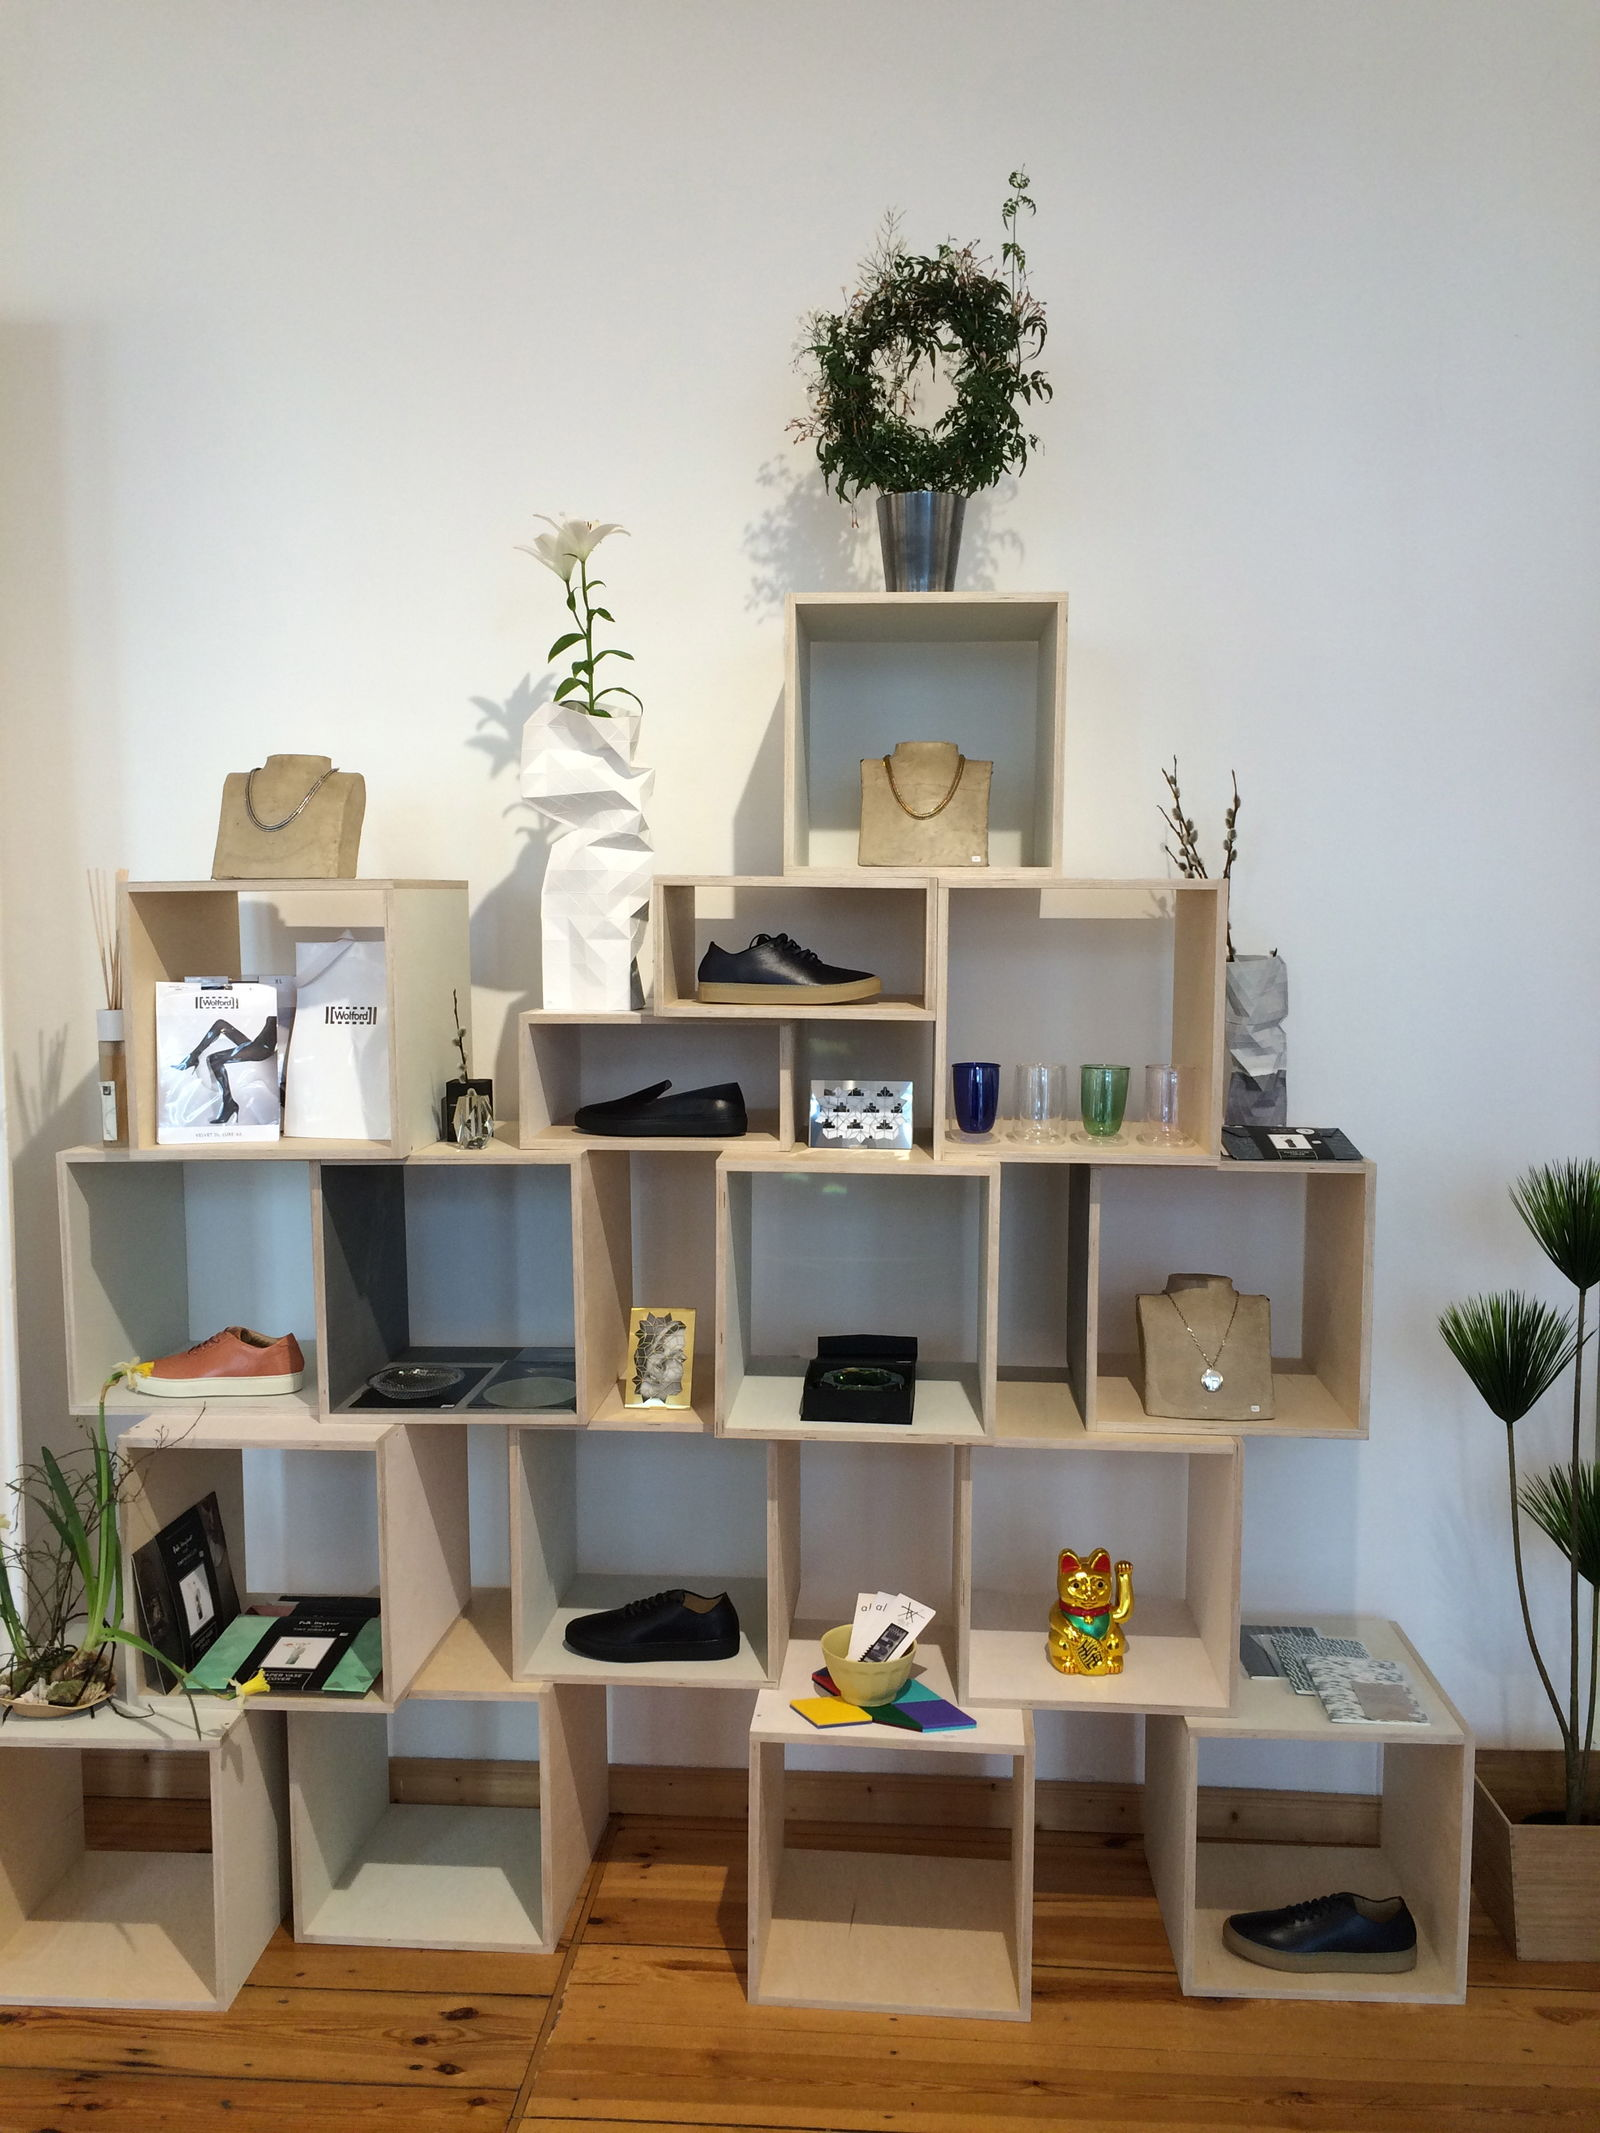 Les Soeurs Shop - The Curvy Concept Store in Berlin (Bild 5)